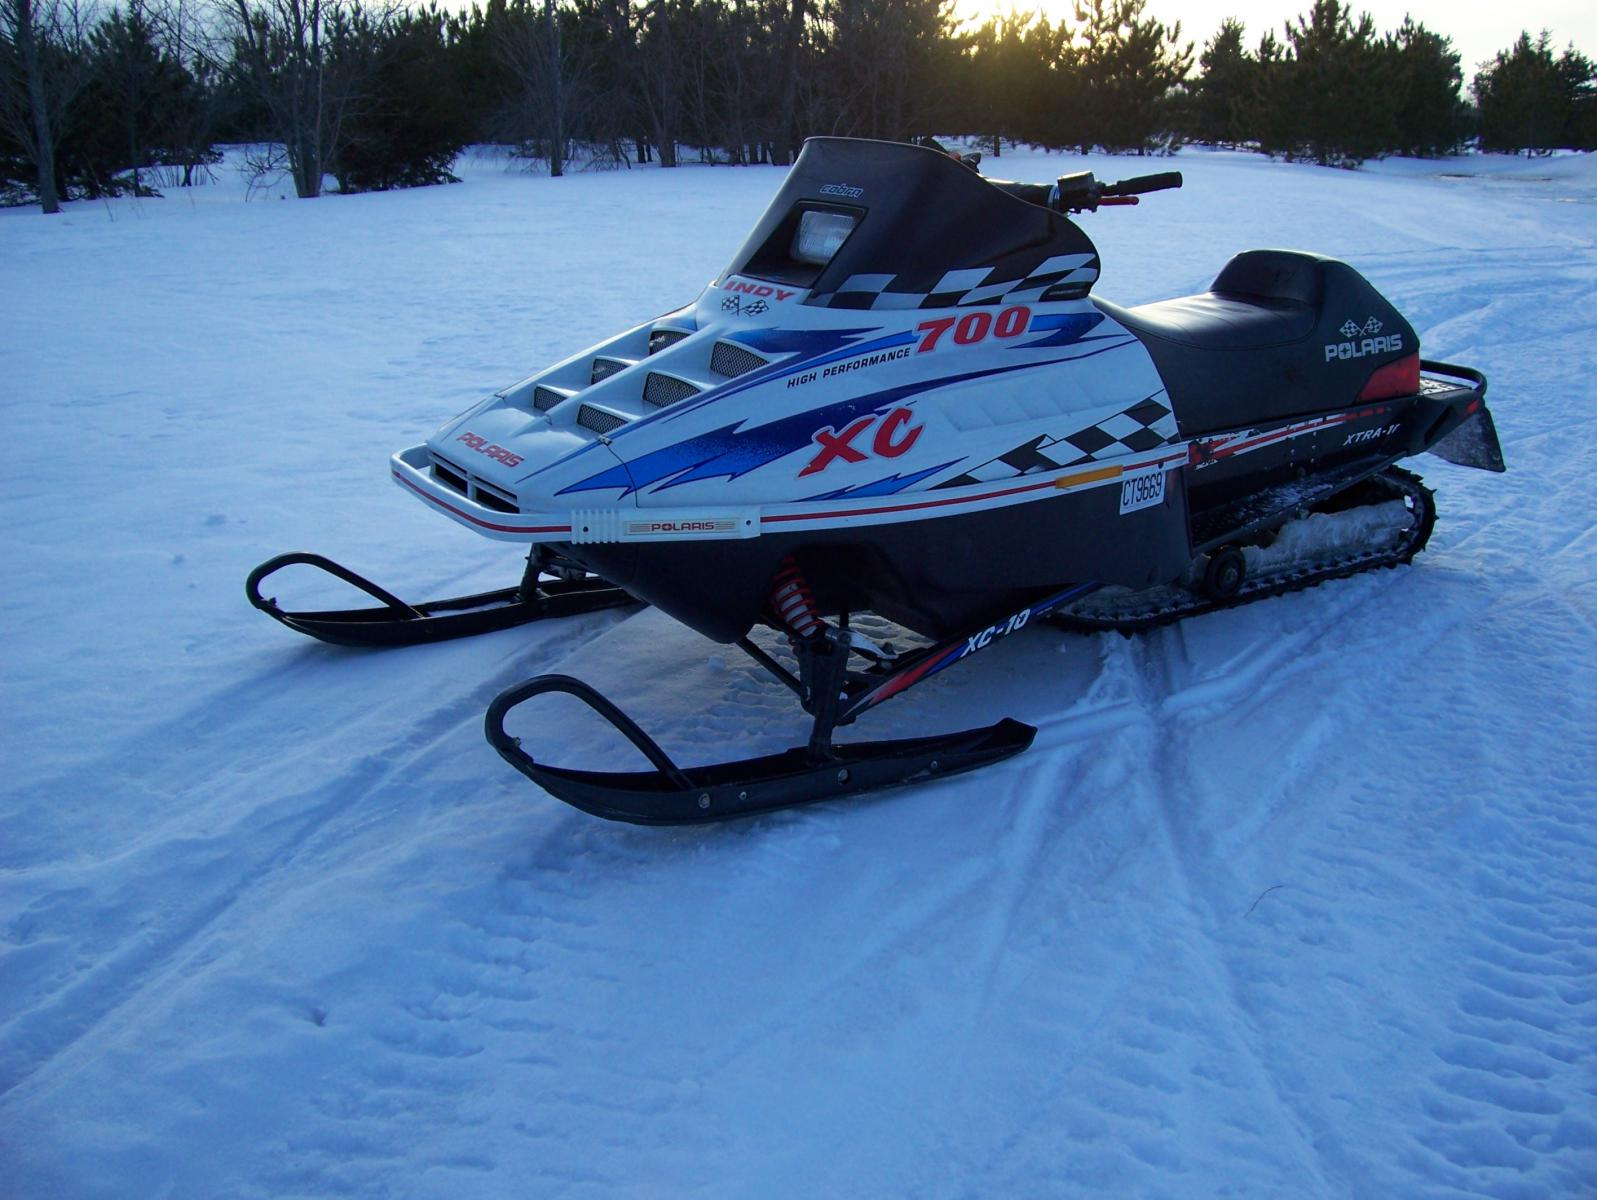 40mm Rack on 1998 XC 700 write up. - HCS Snowmobile Forums